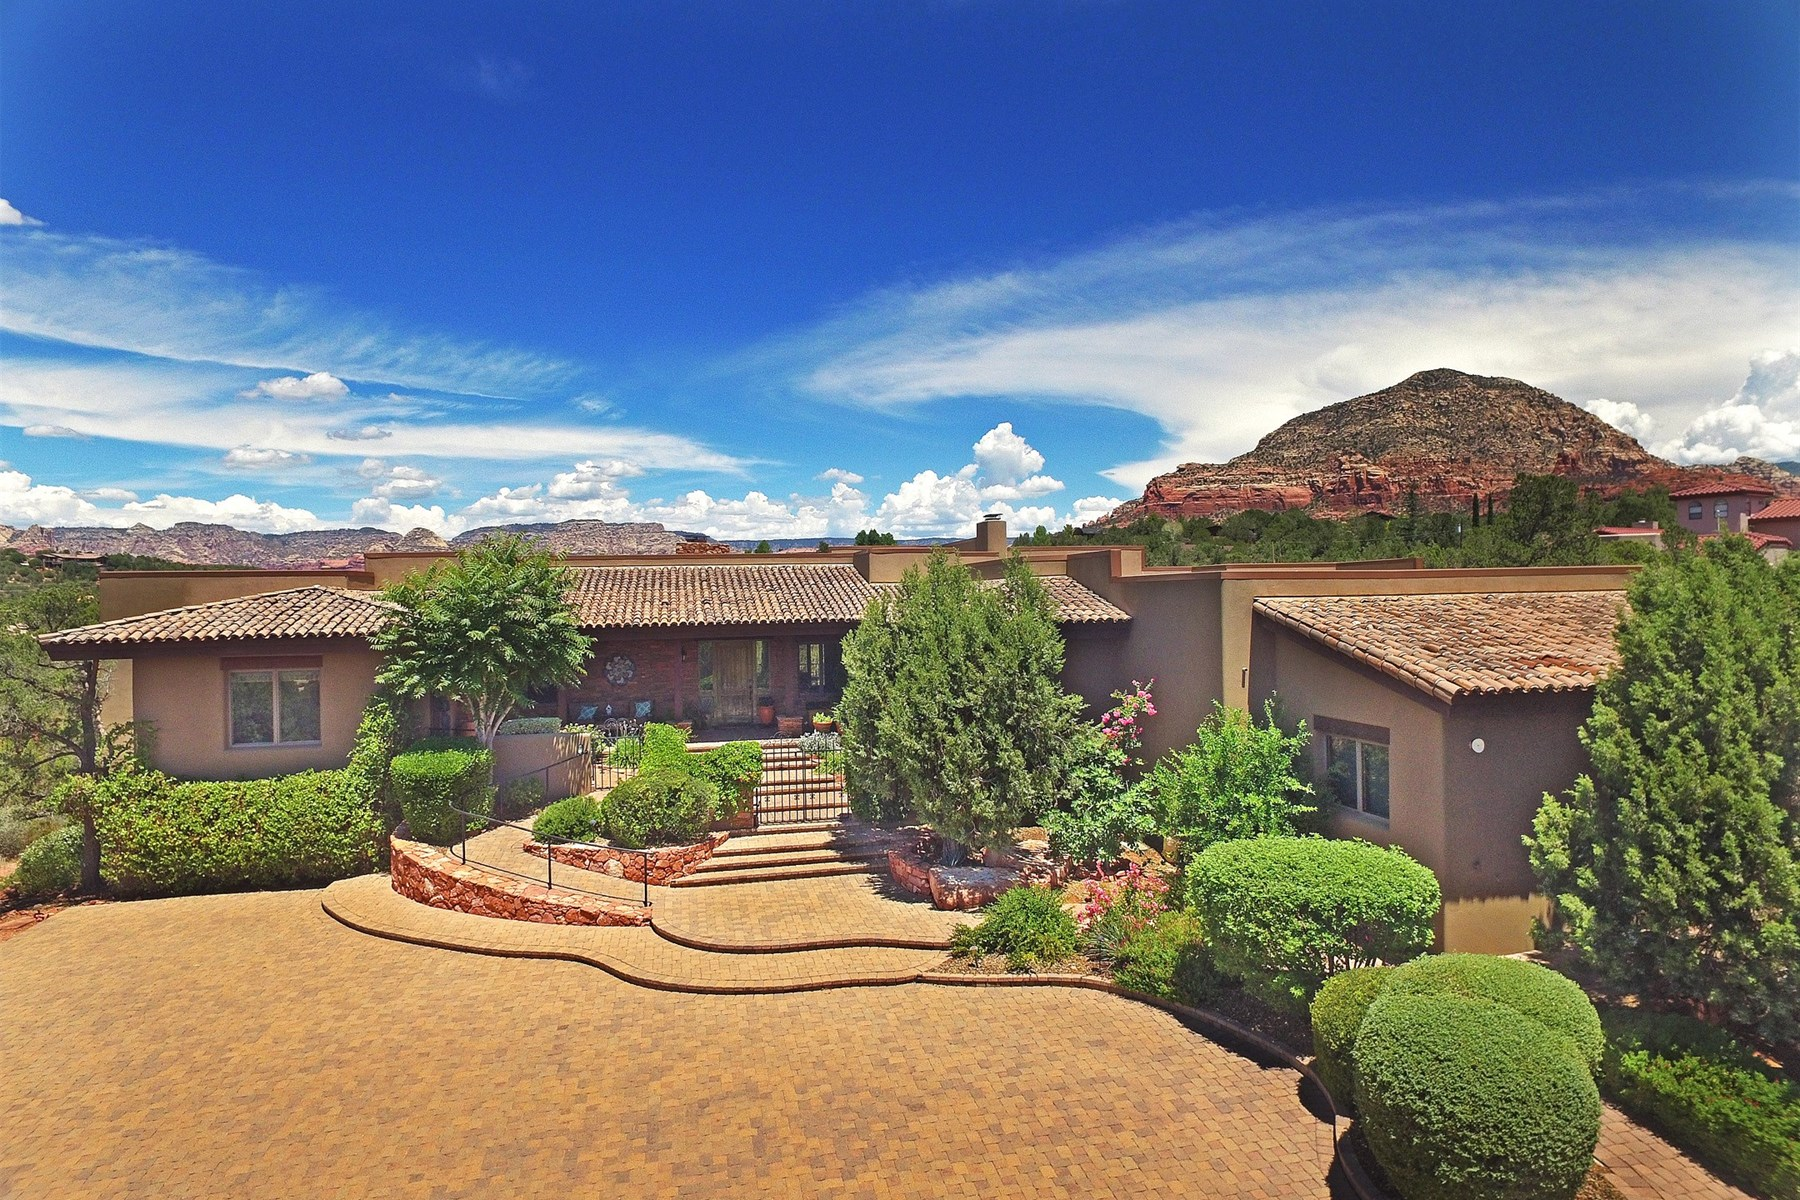 Single Family Home for Sale at Gorgeous custom-designed luxury home 41 E Dove Wing Drive Sedona, Arizona, 86336 United States